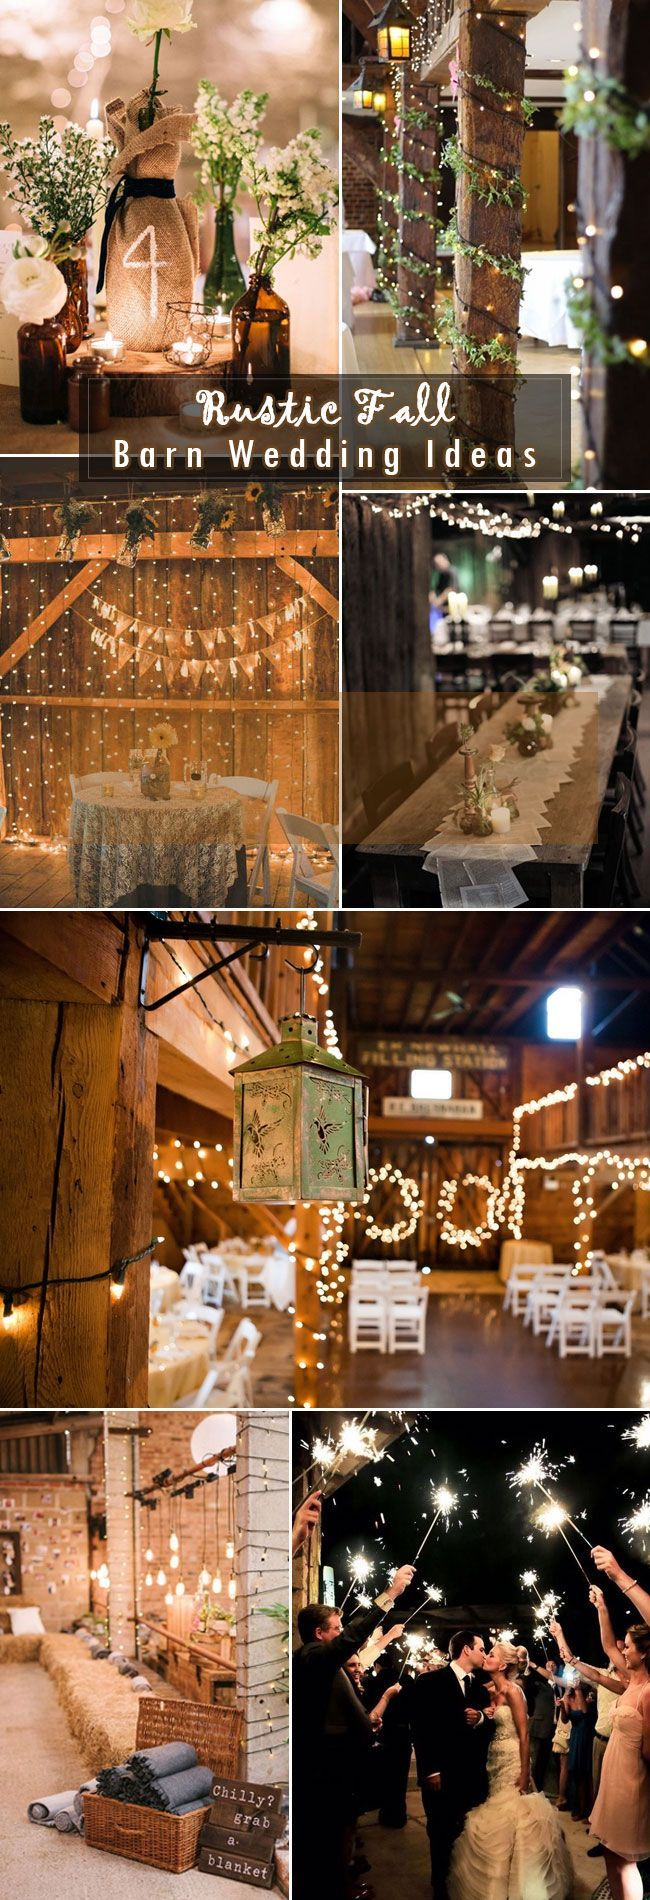 "Rustic Barn Wedding Lighting Decor Inspiration - hanging ""happily ever after"" with the sparkly lights and greenery on the posts"